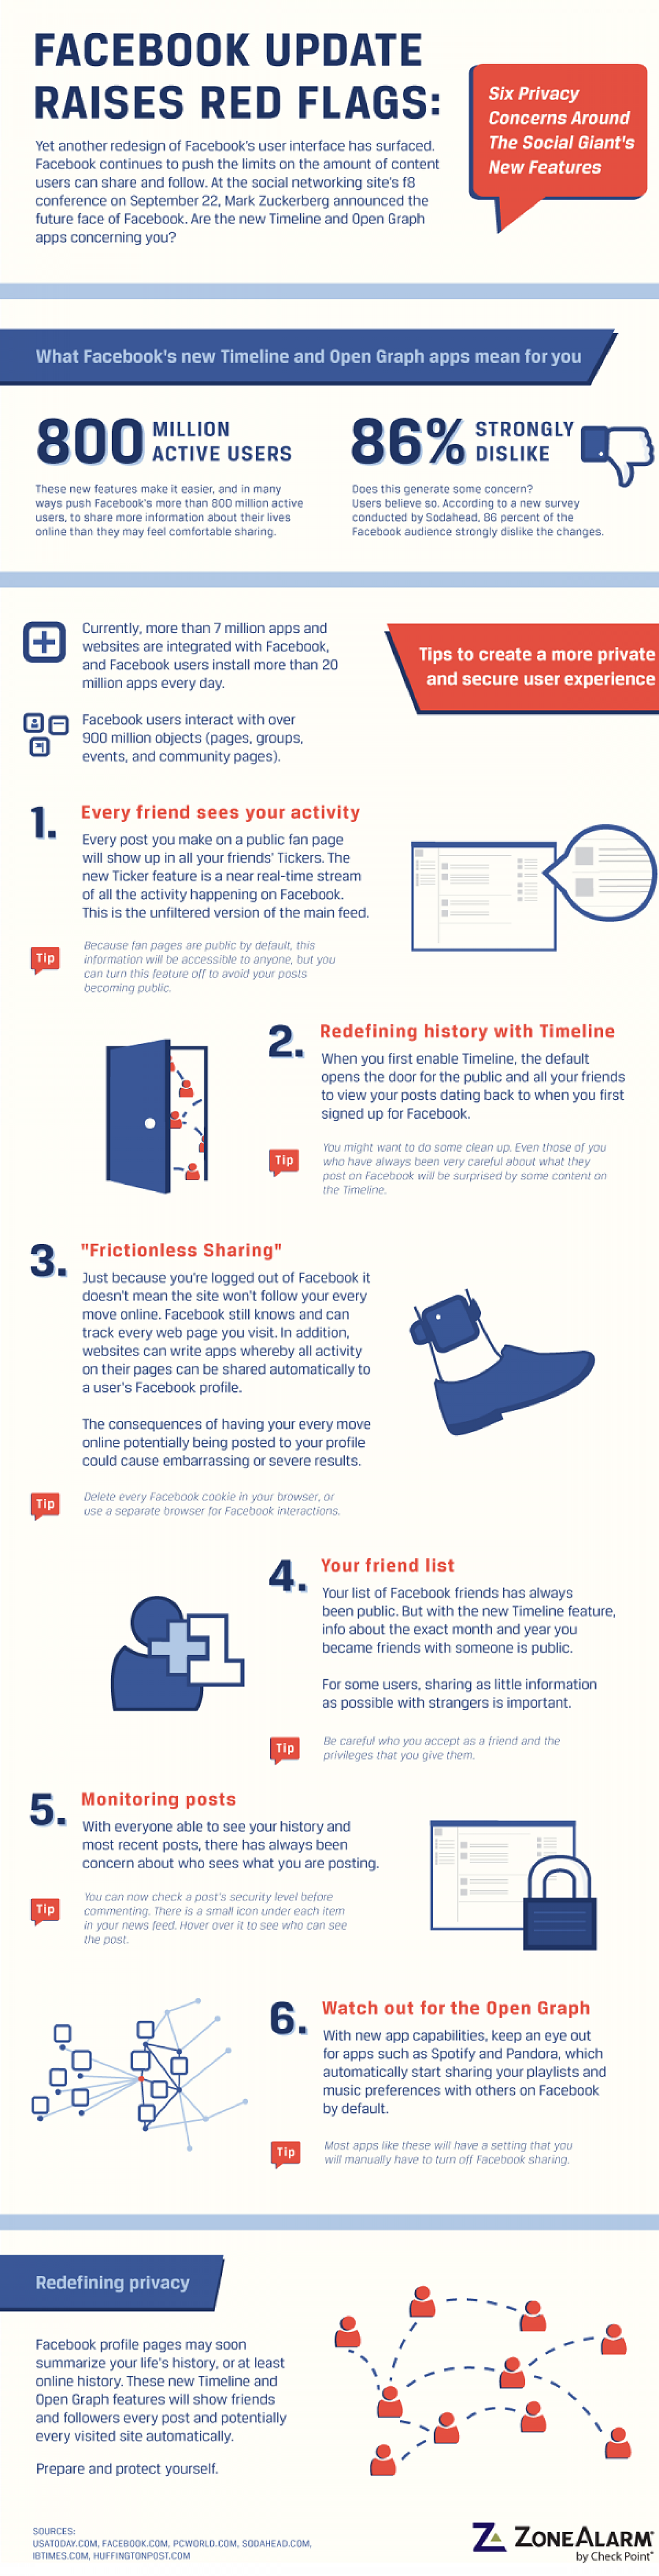 Facebook Update Raises Red Flags  Infographic